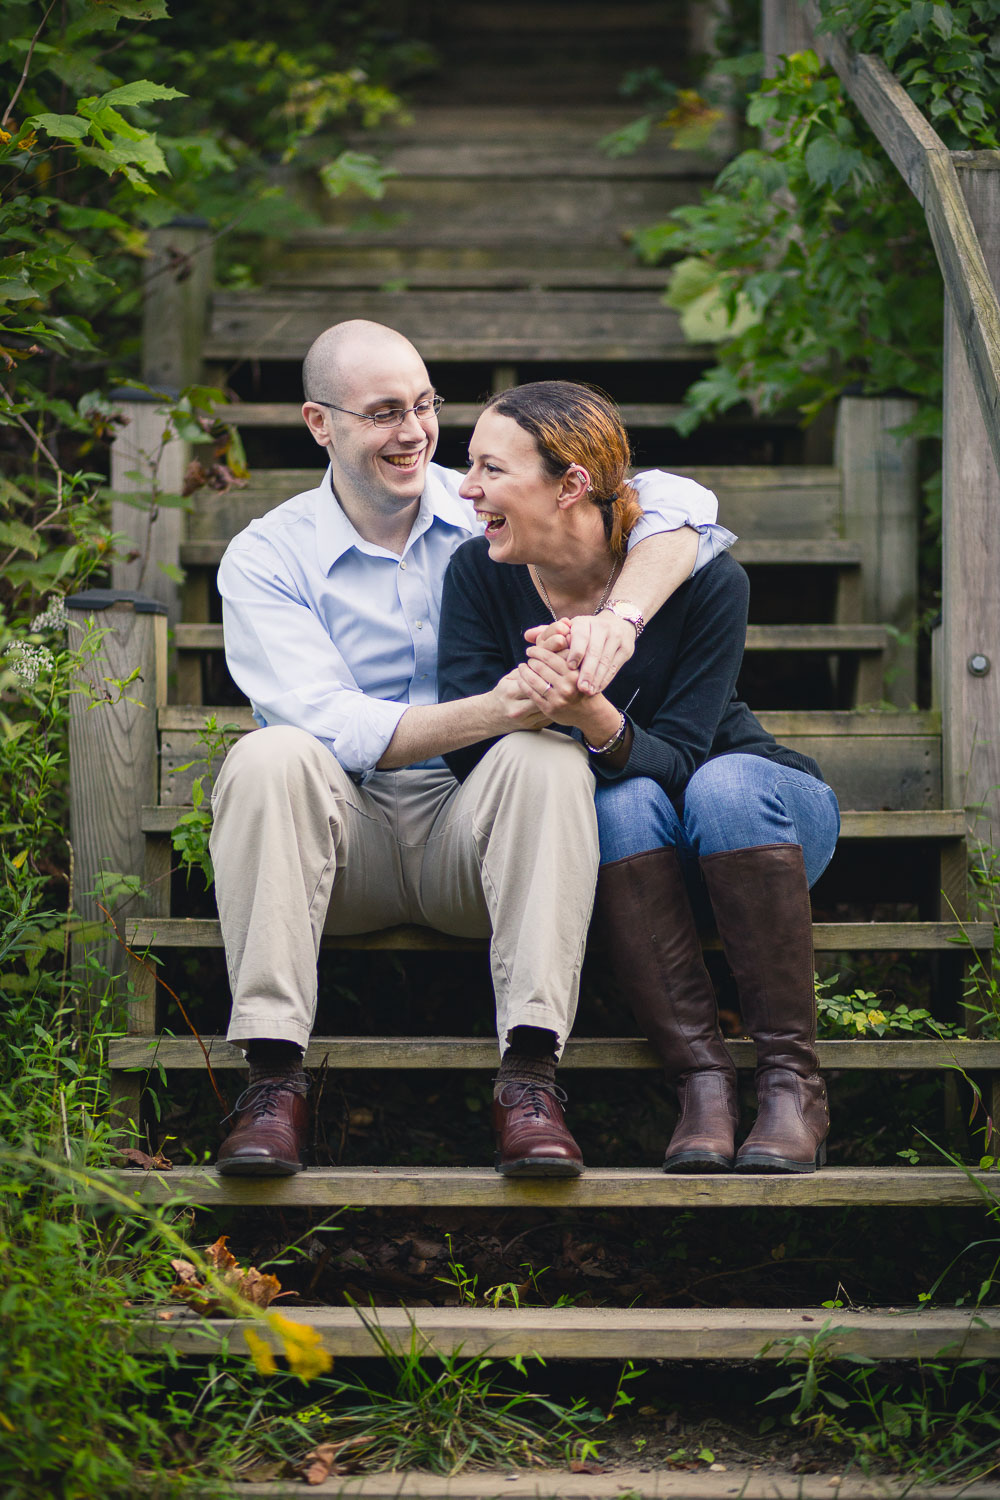 a-beautiful-engagement-session-at-savage-mill-greg-ferko-petruzzo-photography-03